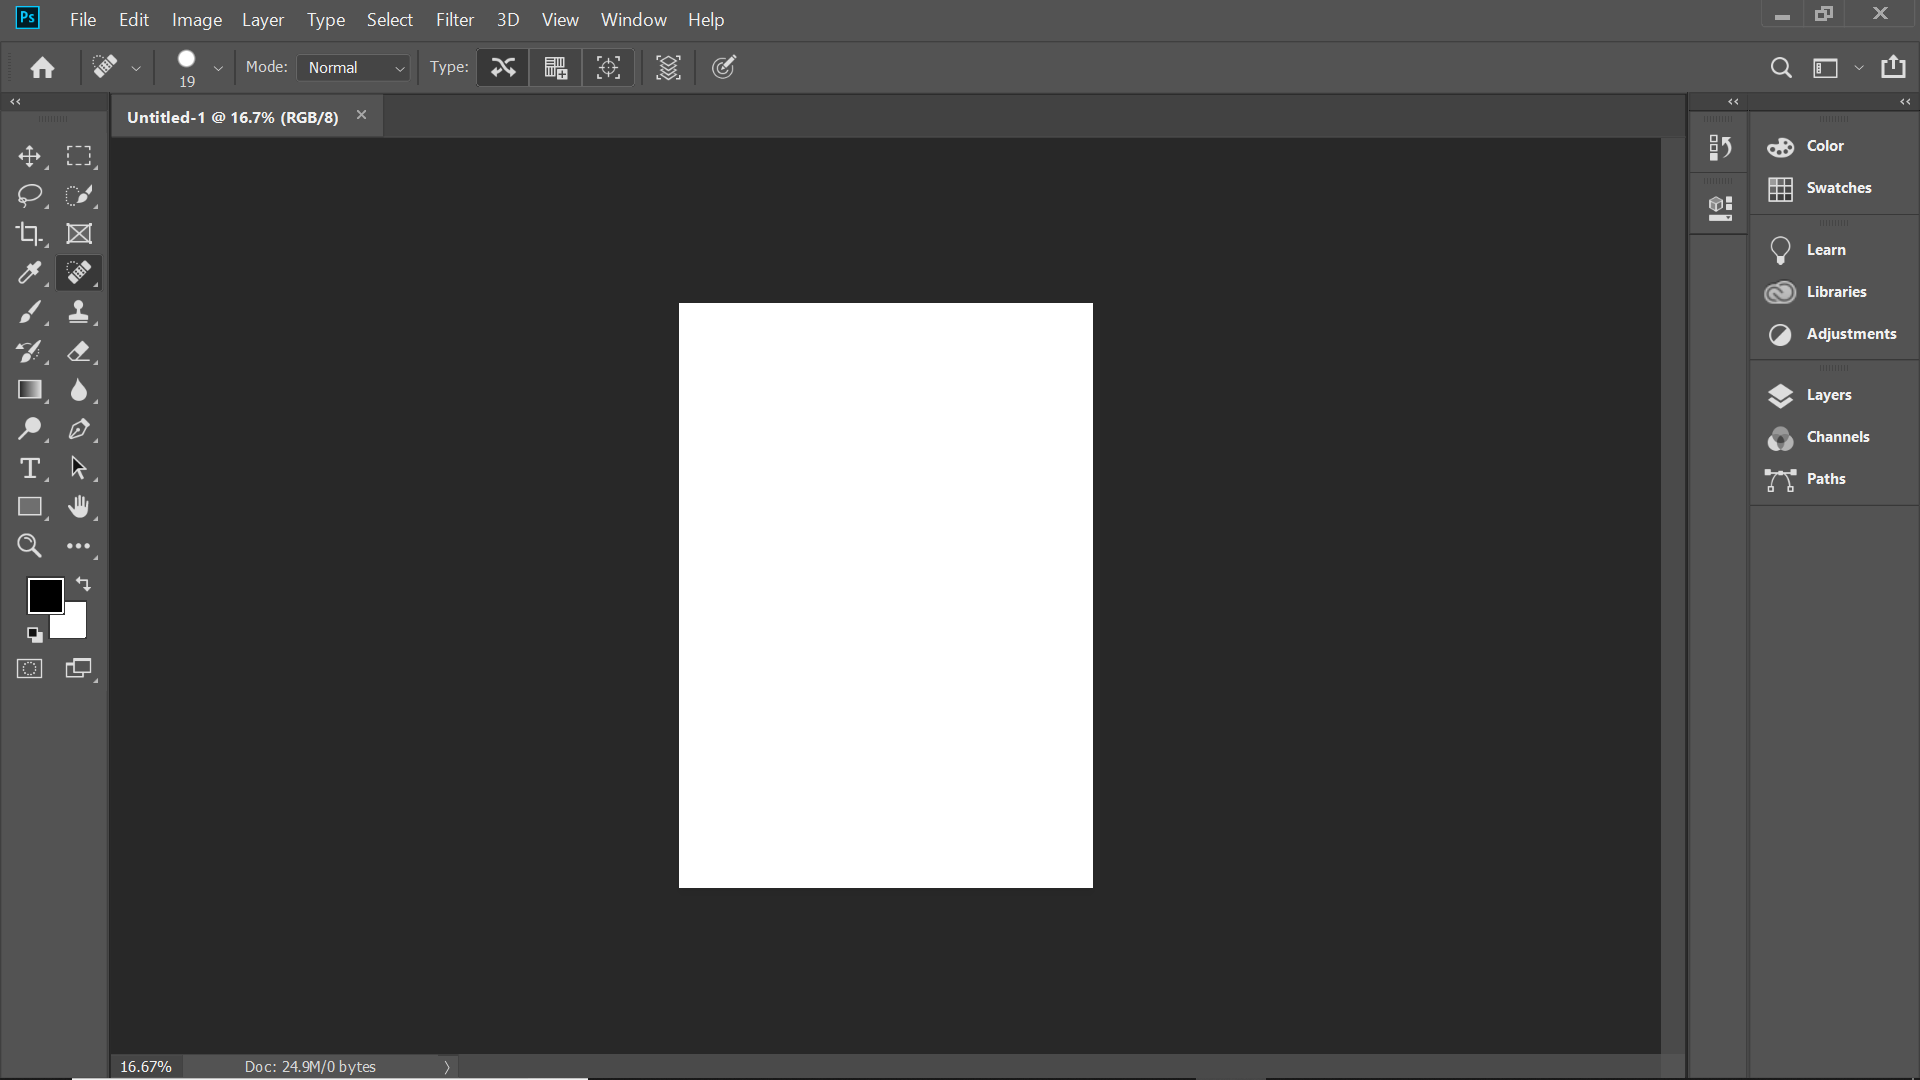 Patch Tool in Photoshop 1.1